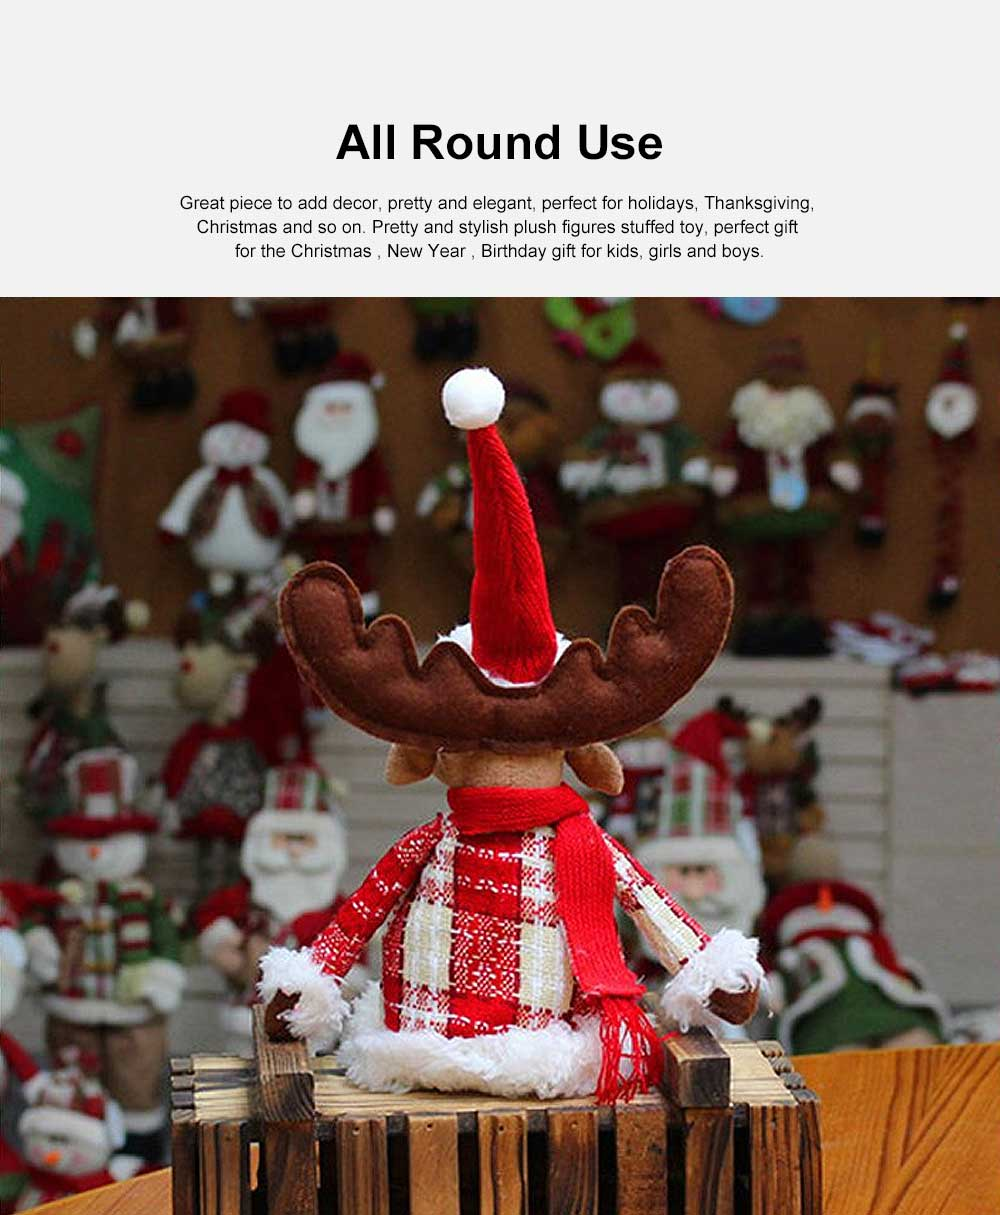 Christmas Decorations Elk Ornaments Christmas Fabric Sitting Posture Dolls Christmas Creative Toys 3